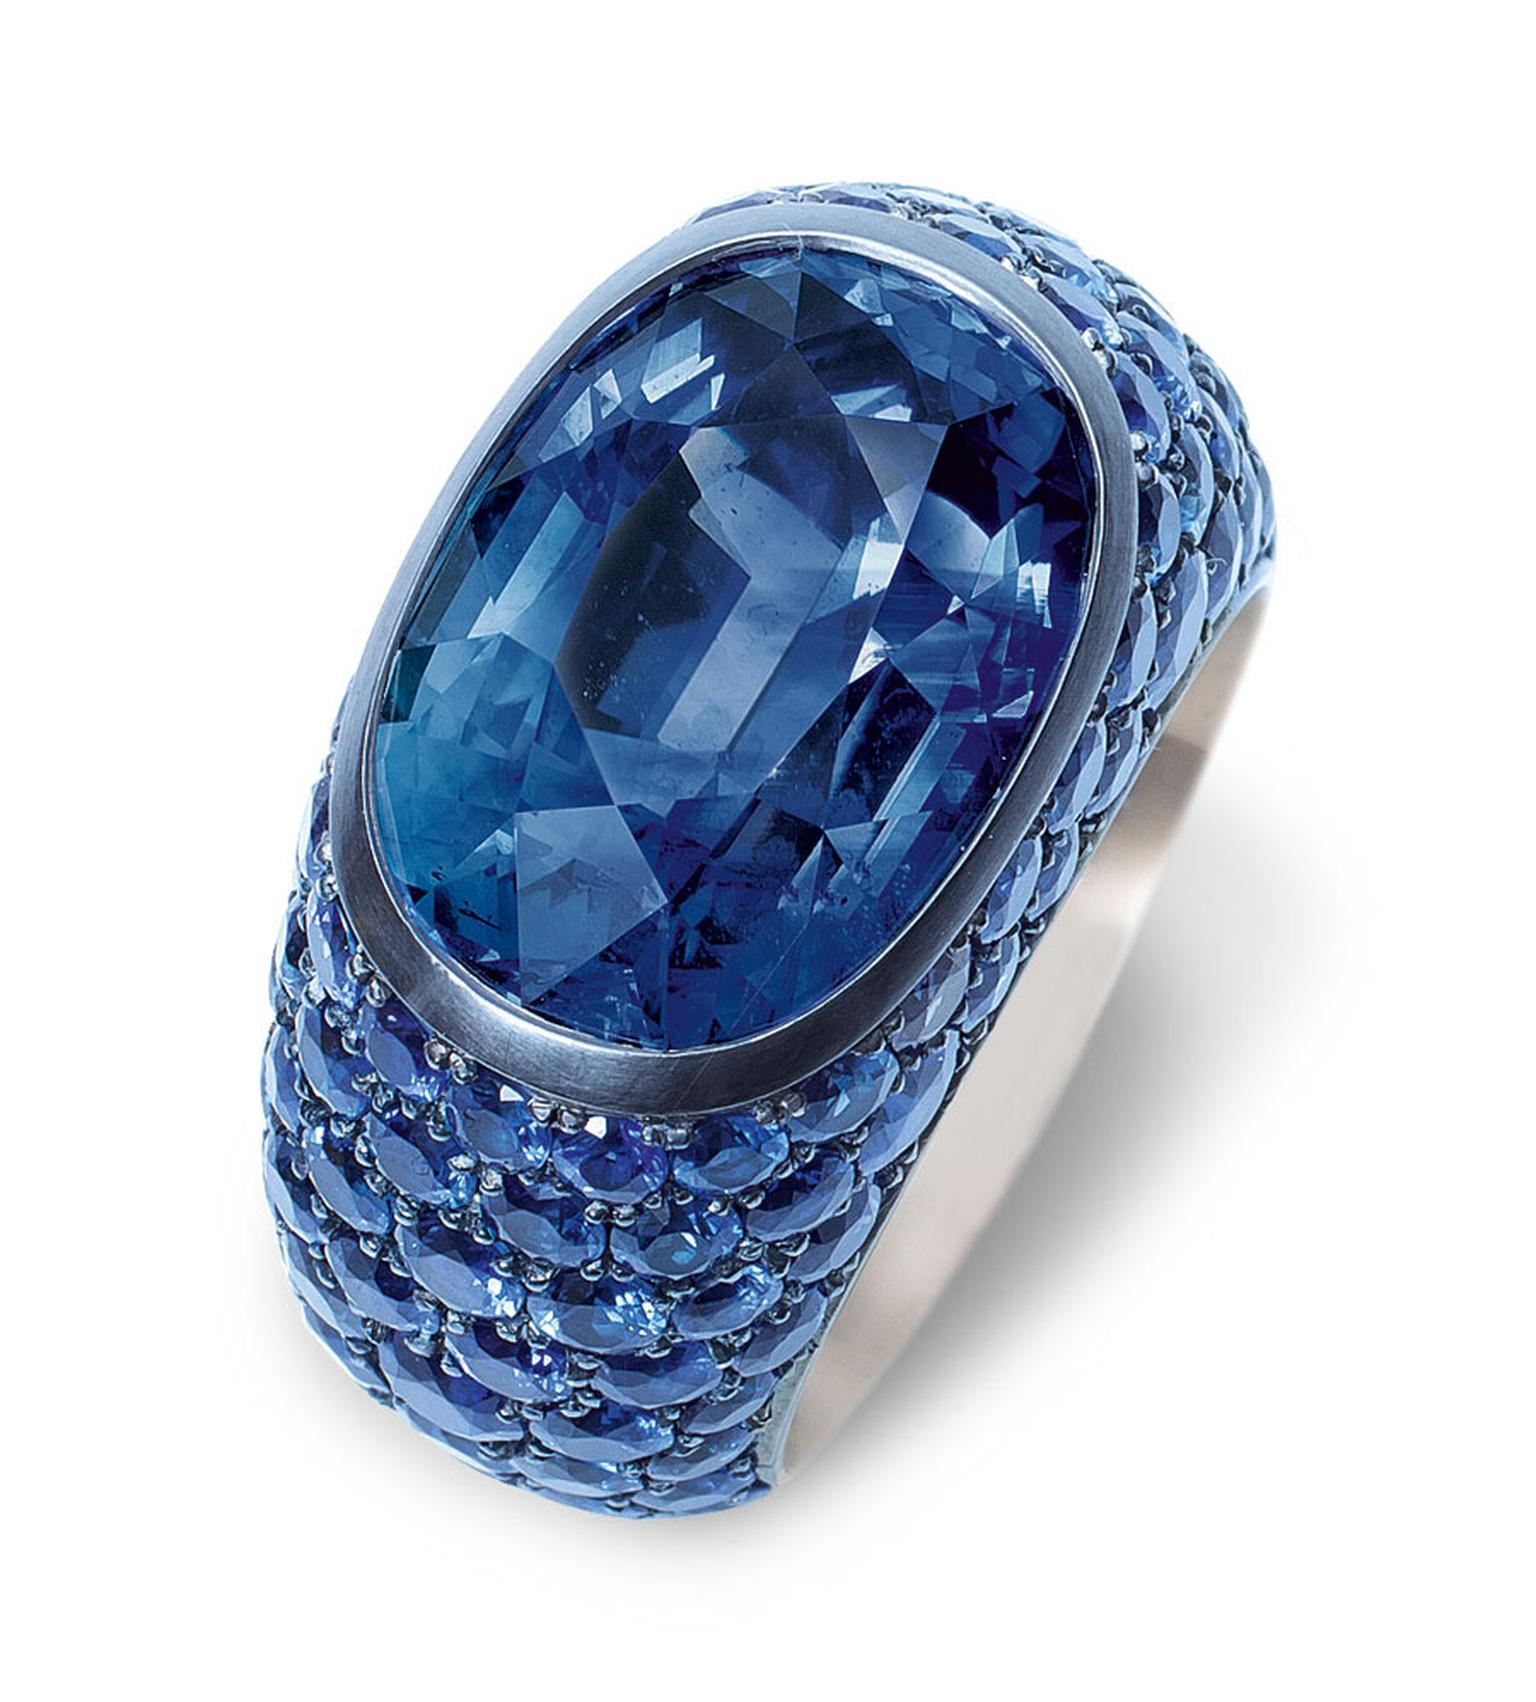 Hemmerle-ring-silver-white-gold--blue-sapphire-cts-blue-sapphires-0179